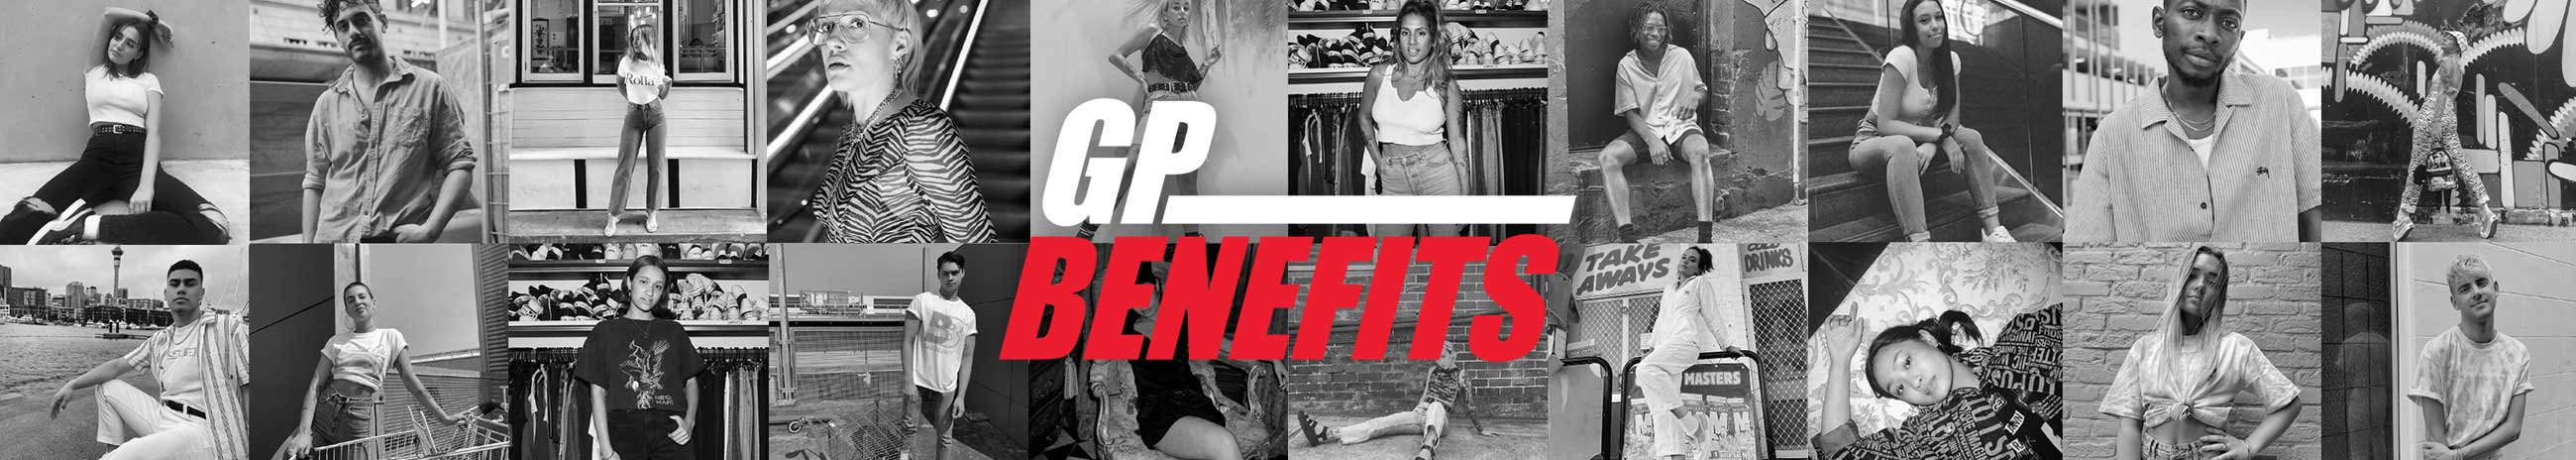 GP benefits banner